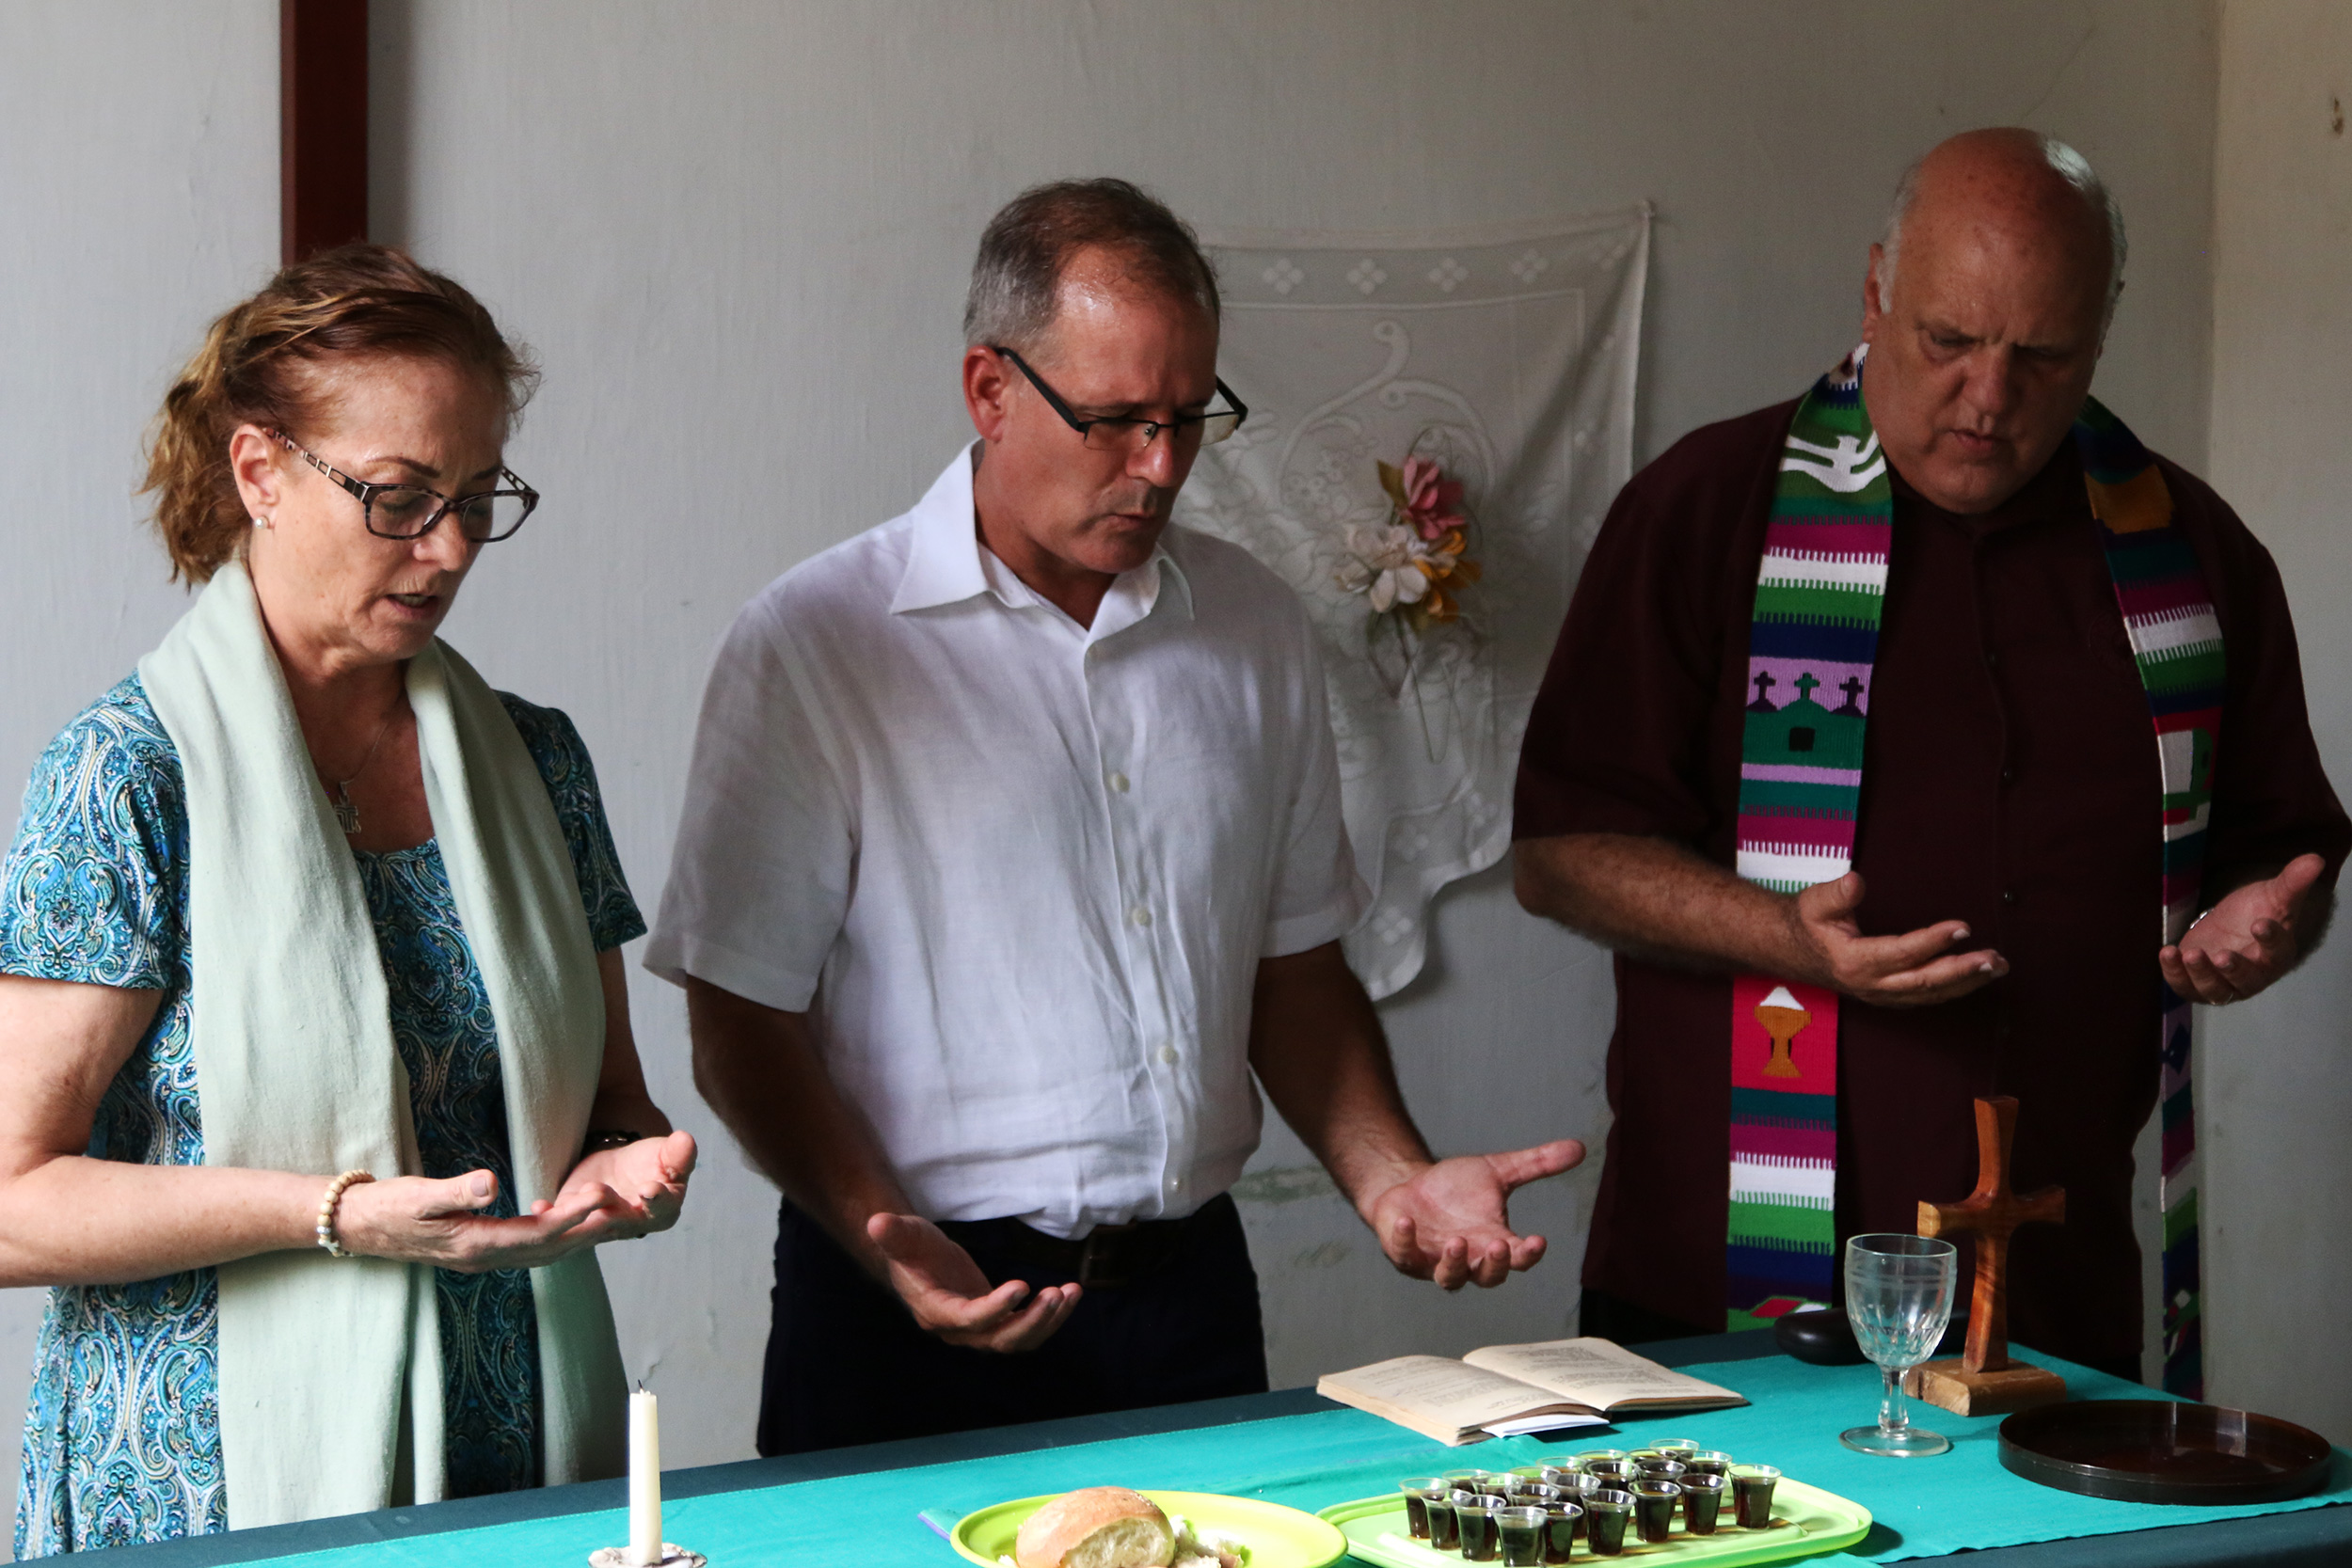 Jo Ella Holman (left), Ary Fernandez (center) and Edelberto Valdes (right) officiate for the Sacrament of the Lord's Supper at Camagüey Mission.